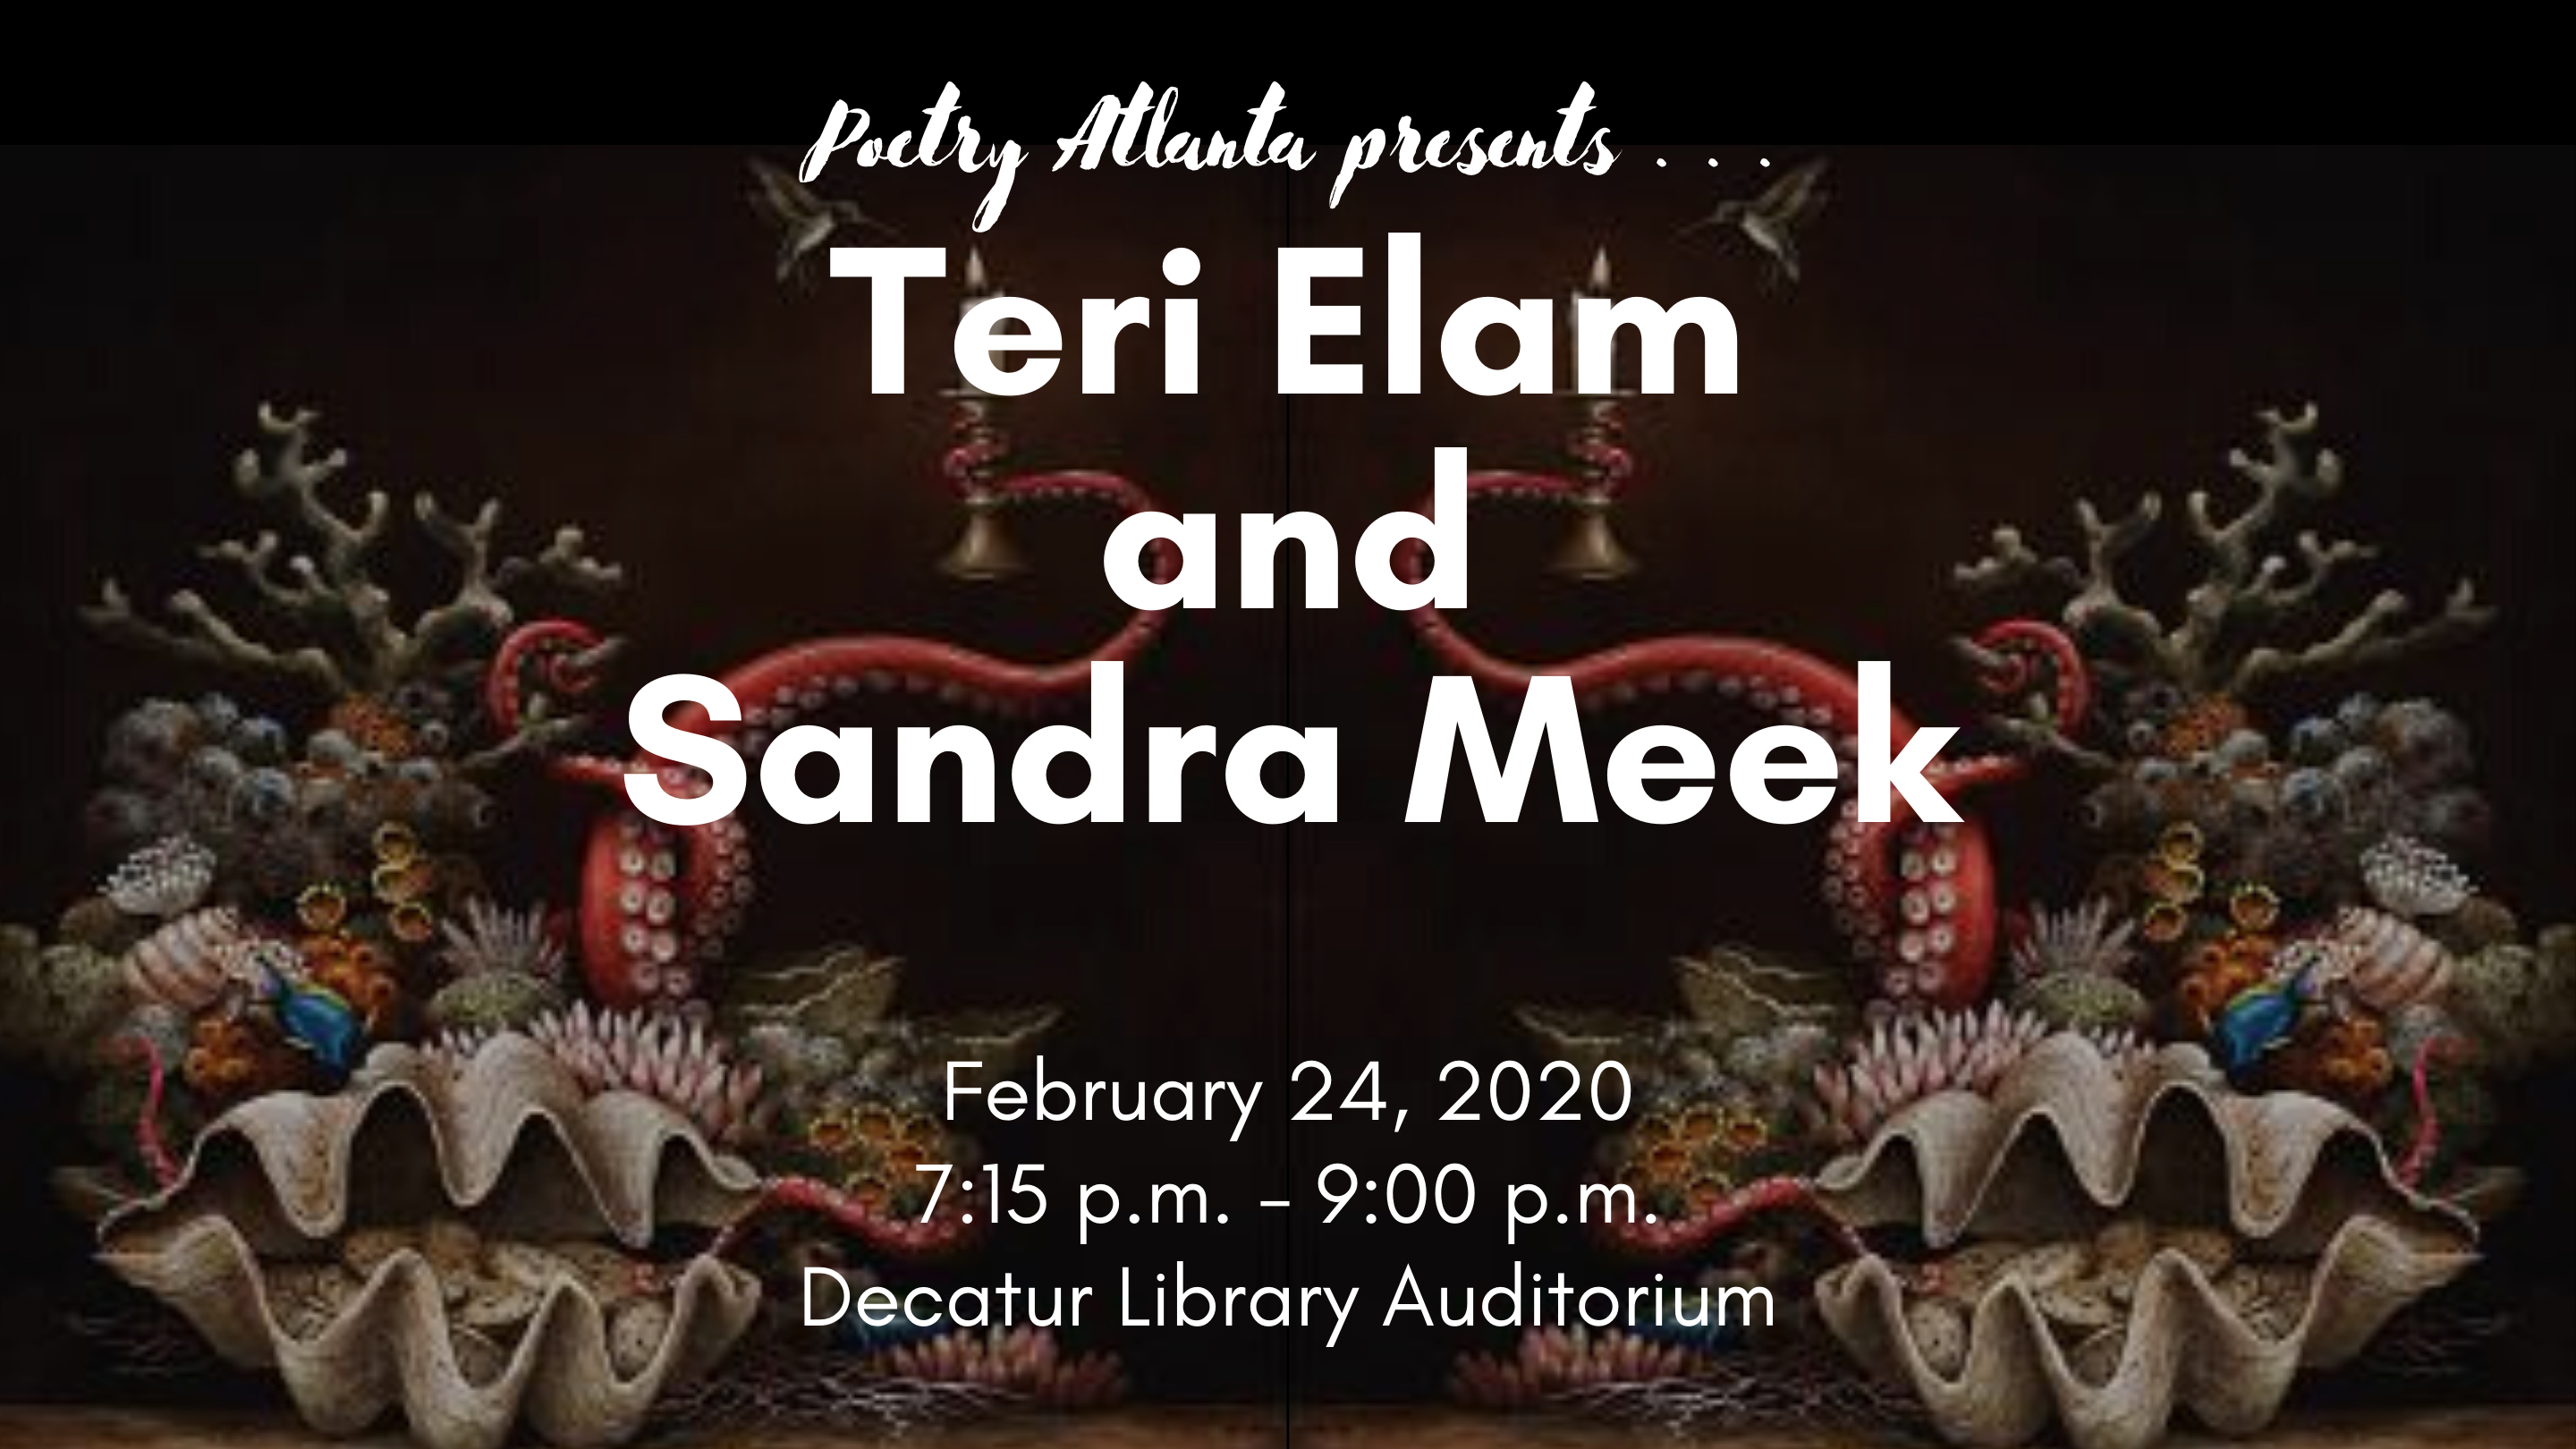 Poetry Atlanta presents . . . Teri Elam and Sandra Meek